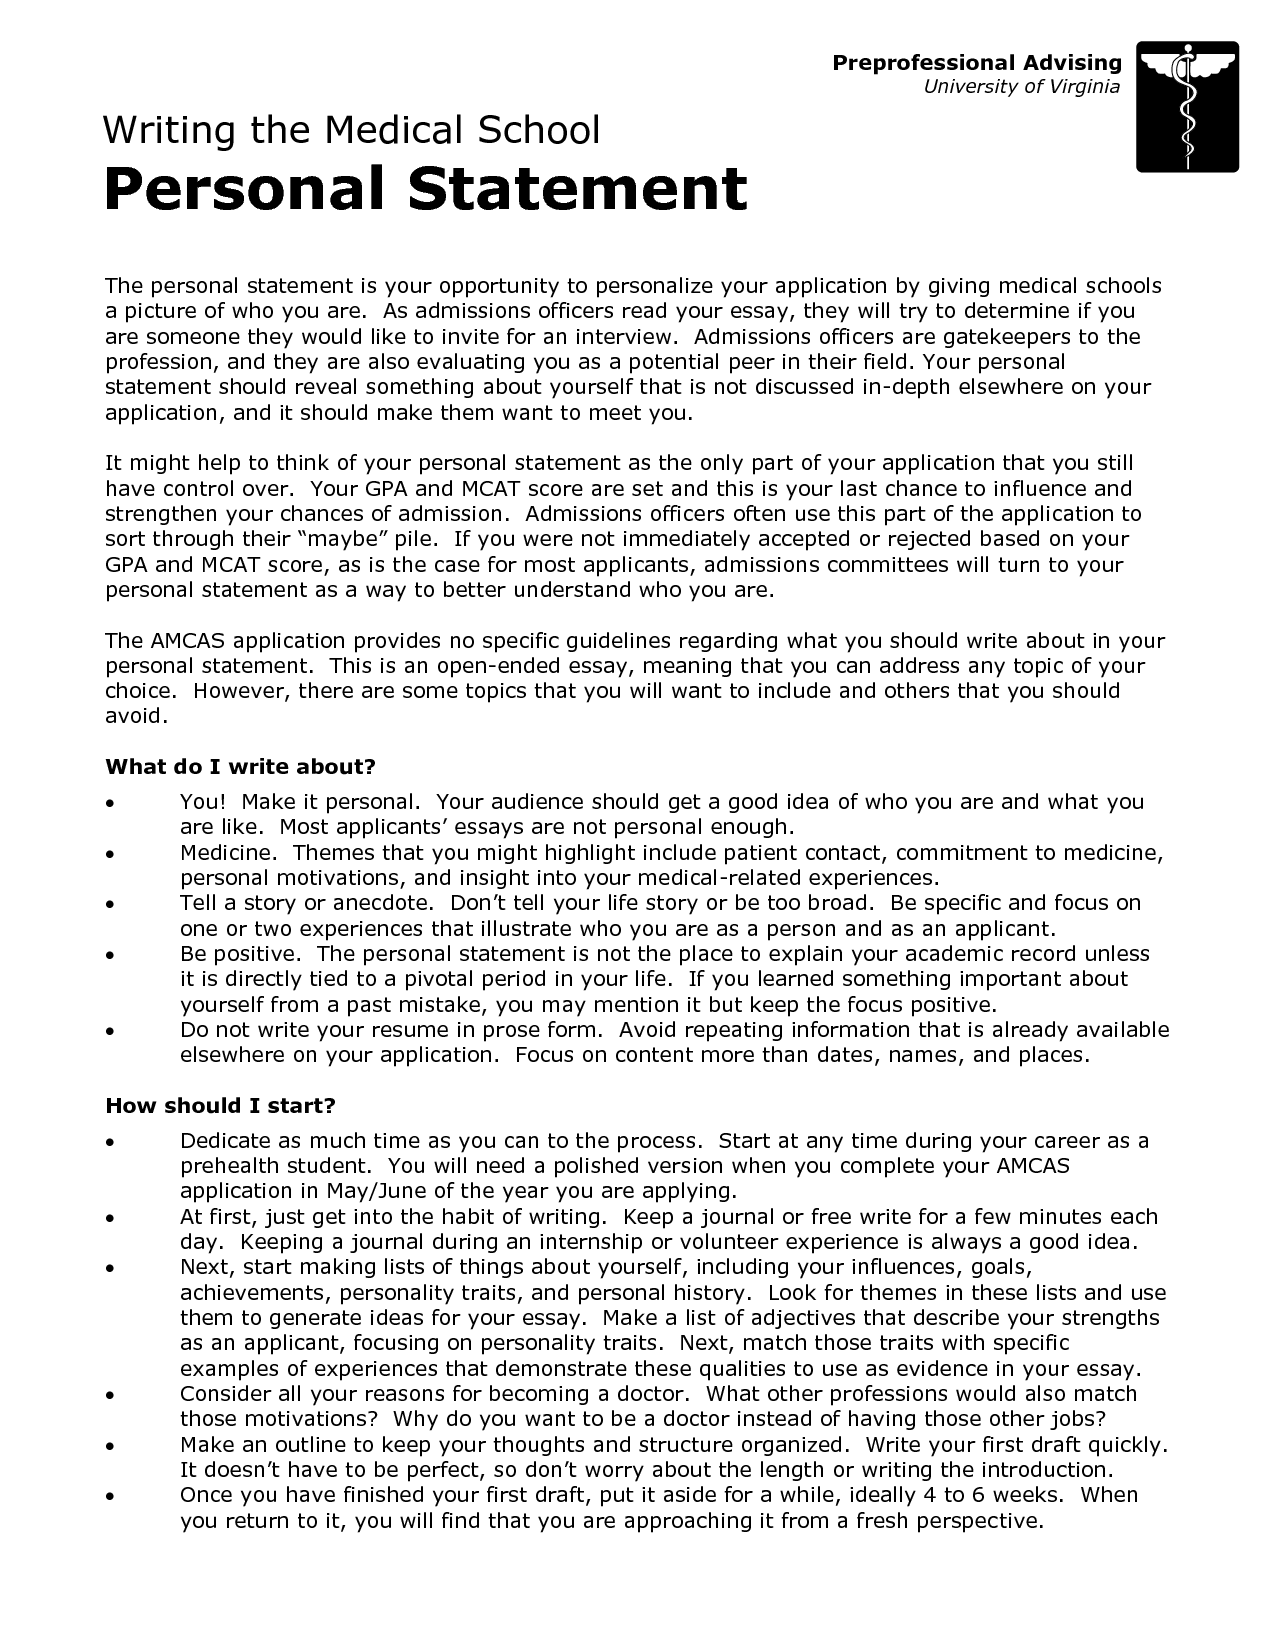 Let us provide you some personal statement help!